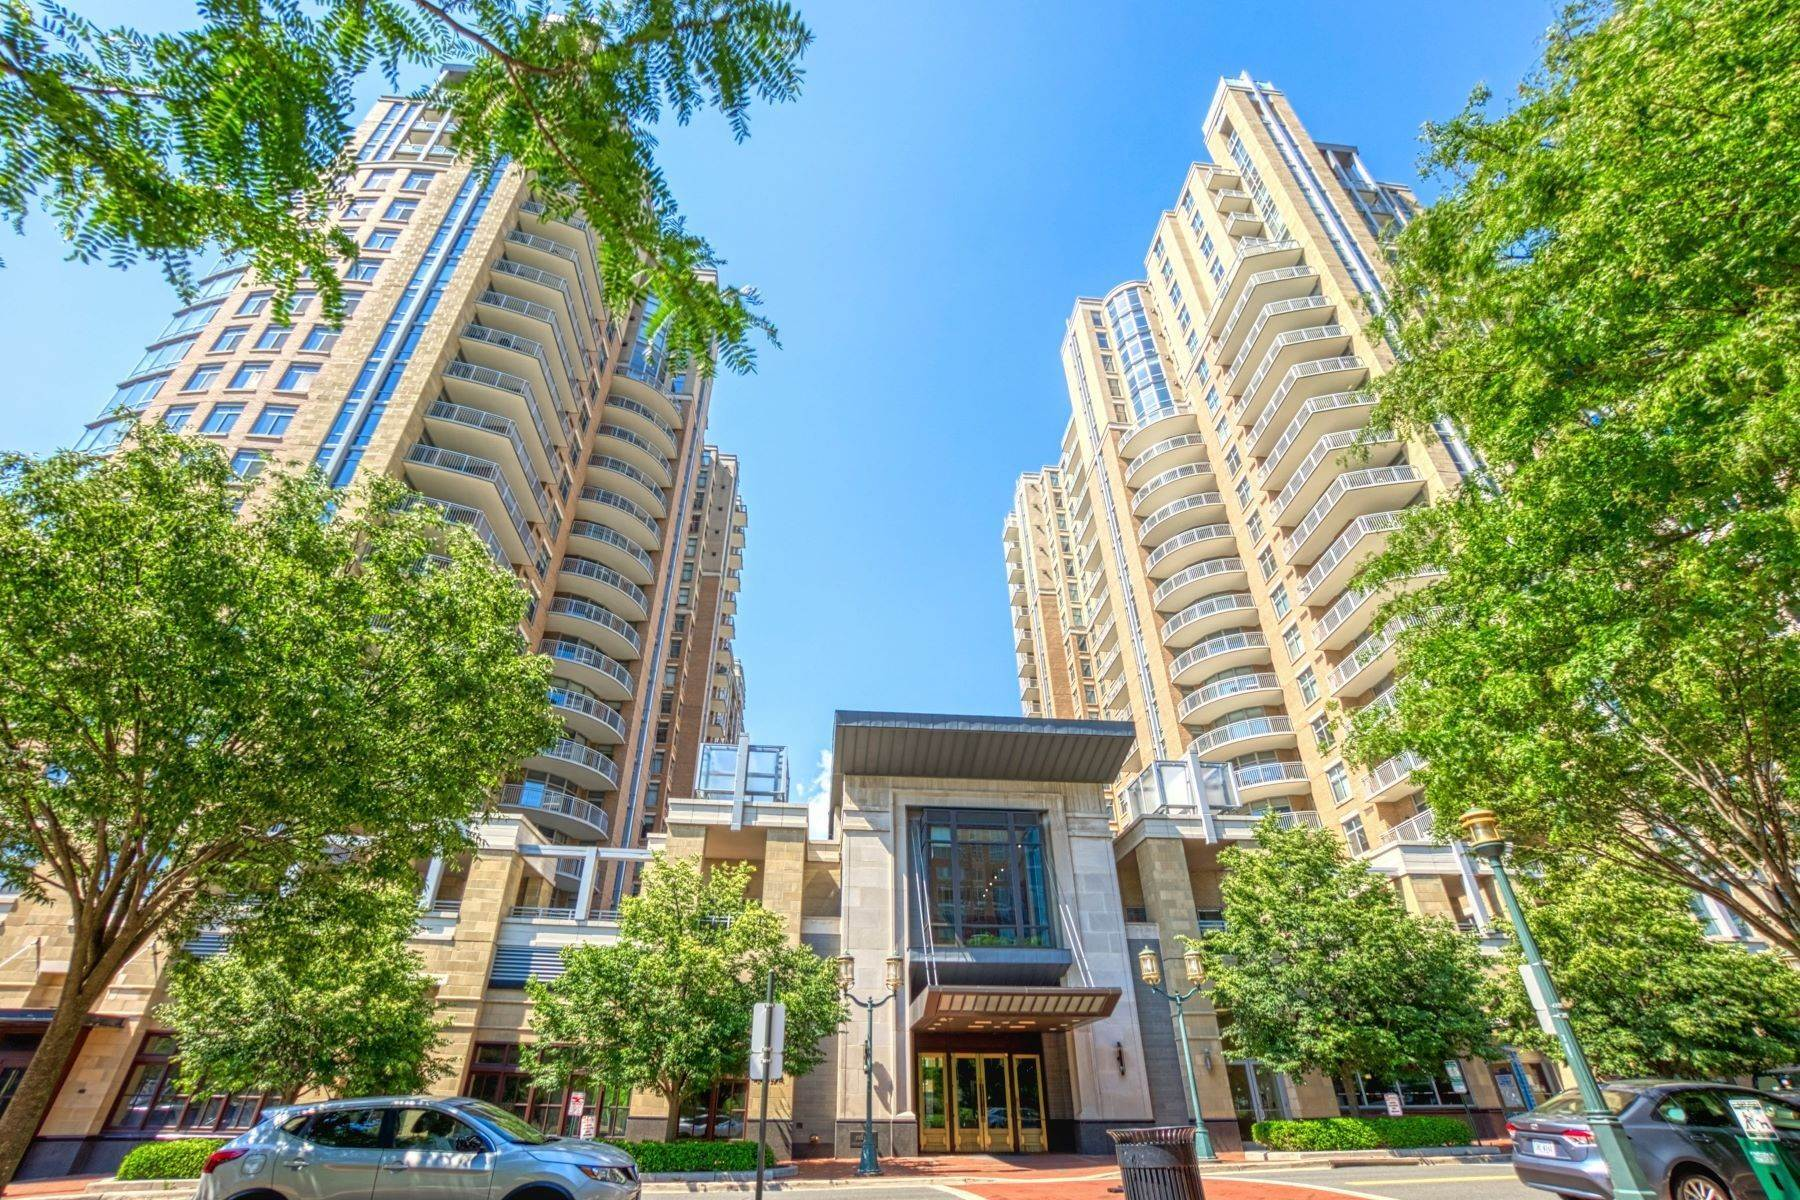 Condominiums for Sale at 11990 Market St, Unit 2102 11990 Market St Unit 2102, Reston, Virginia, 20190 United States